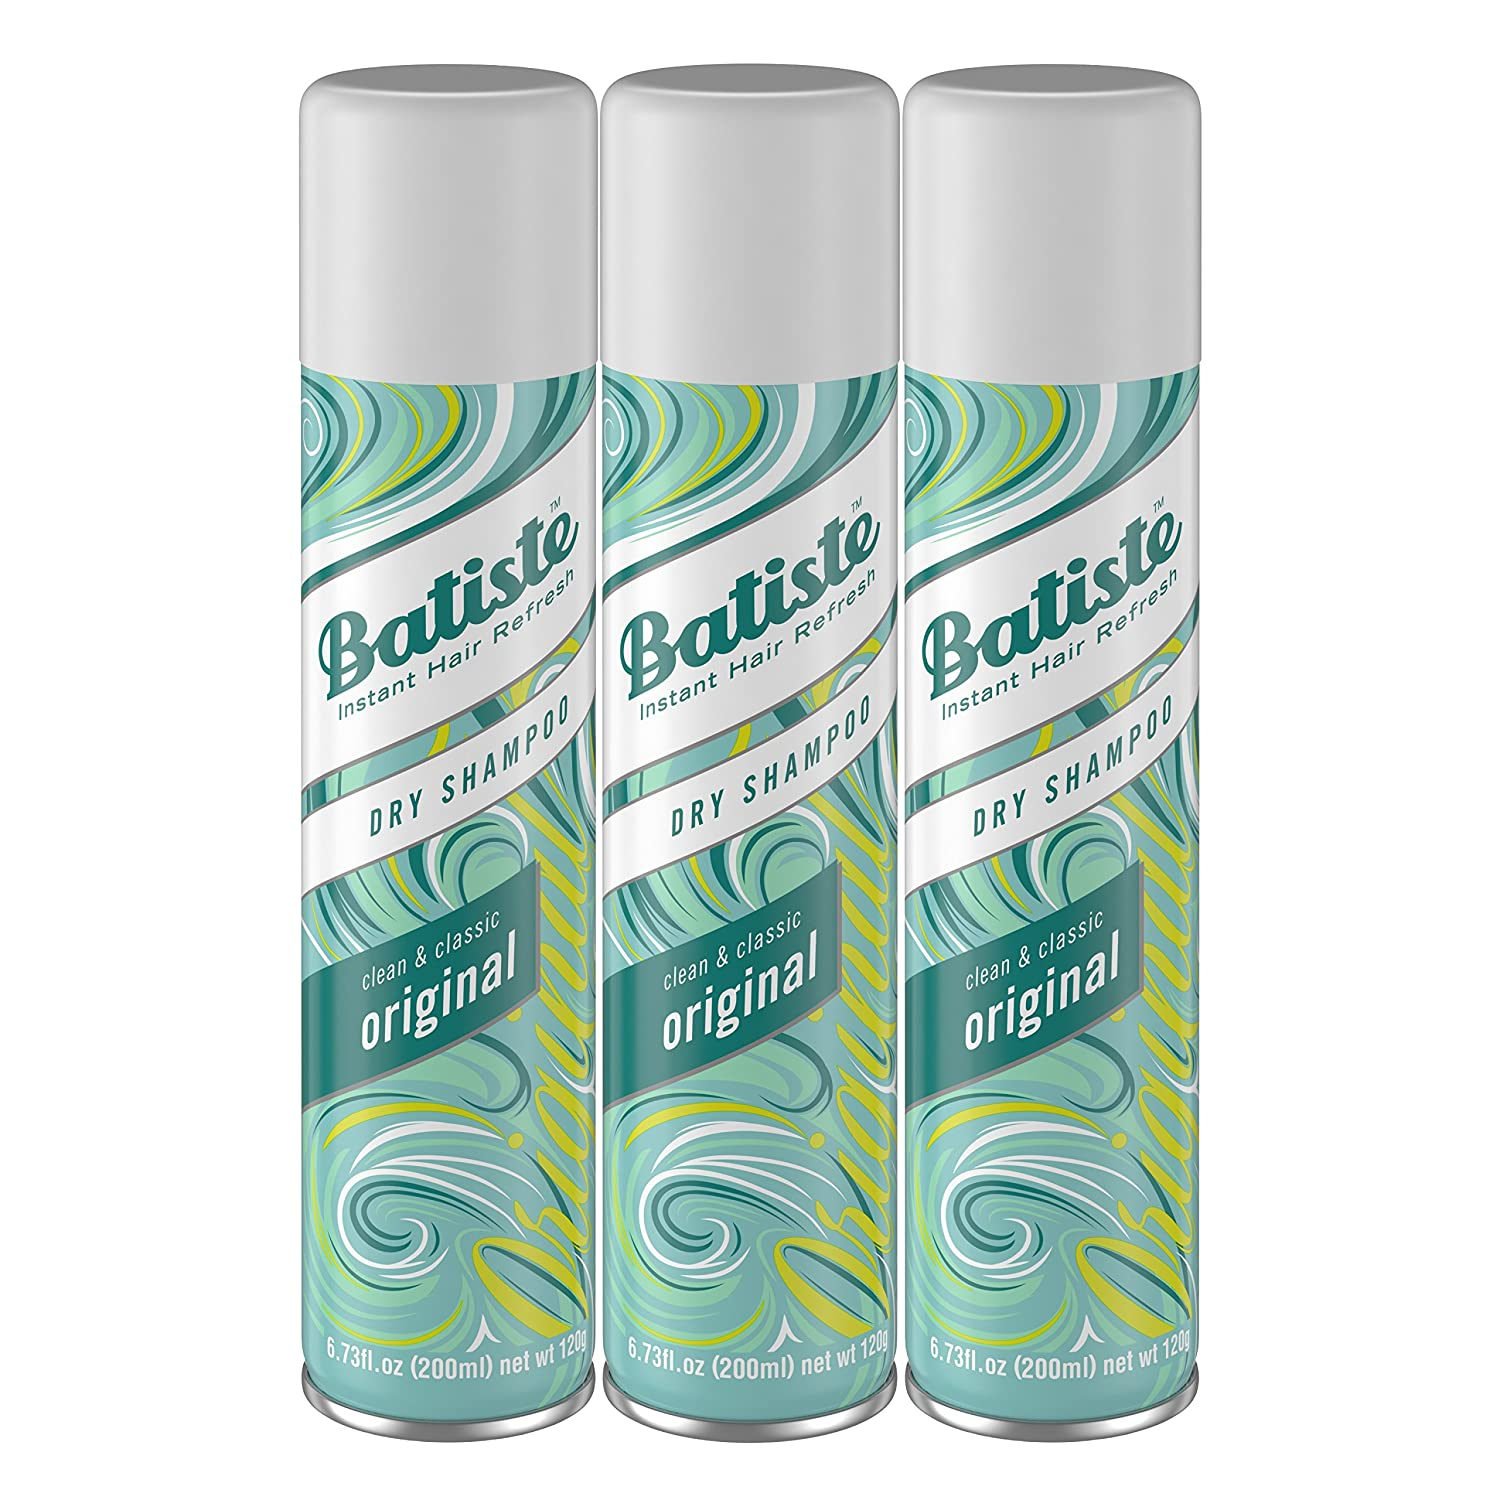 Batiste Dry Shampoo, Original Fragrance, 6.73 Fl Oz,Pack of 3